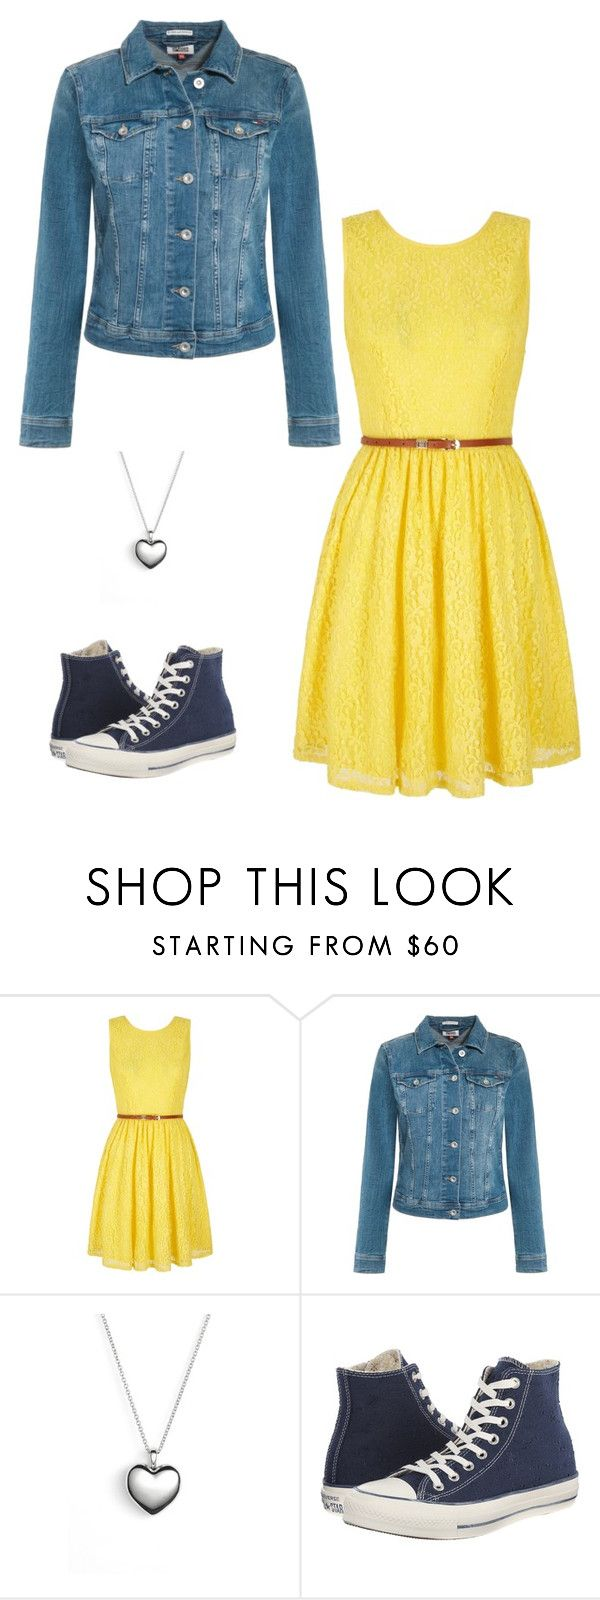 """Summer Date Outfit"" by winniehorner on Polyvore featuring Yumi, Tommy Hilfiger, Pandora and Converse"